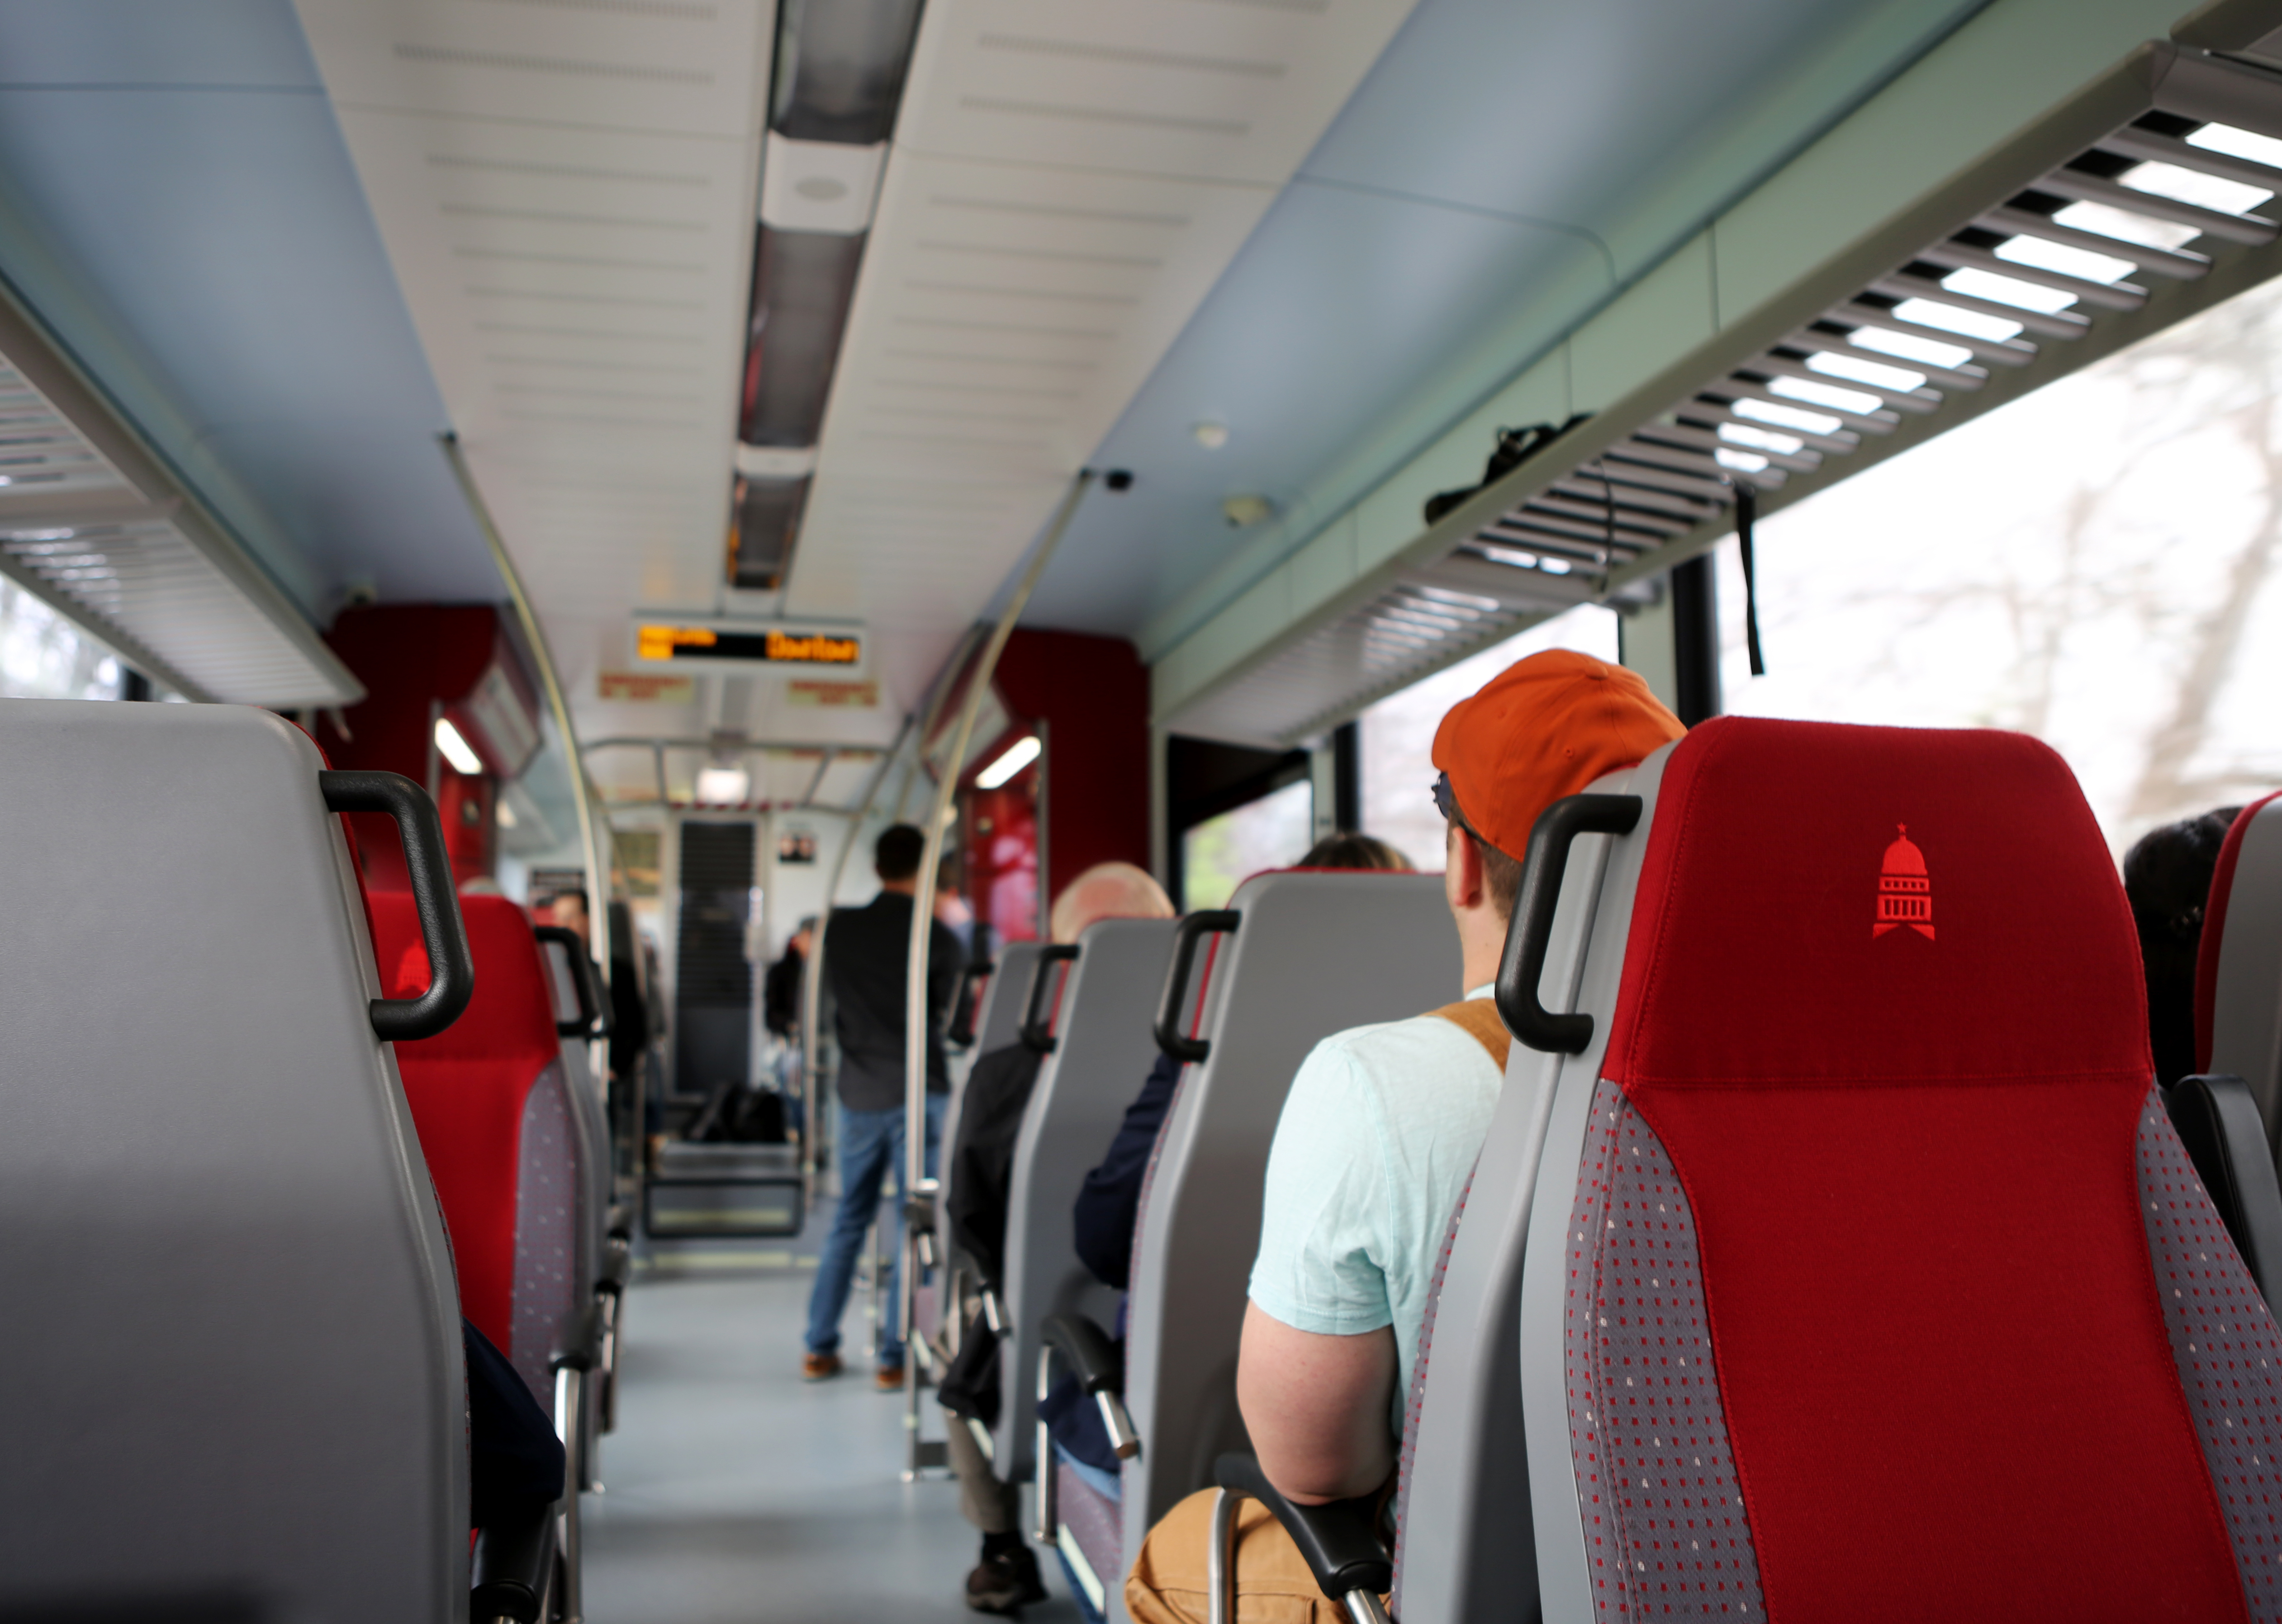 Interior of a bus with aisle in center and chair backs to the camera. There are people in some seats and a person standing and holding a pole in the front.